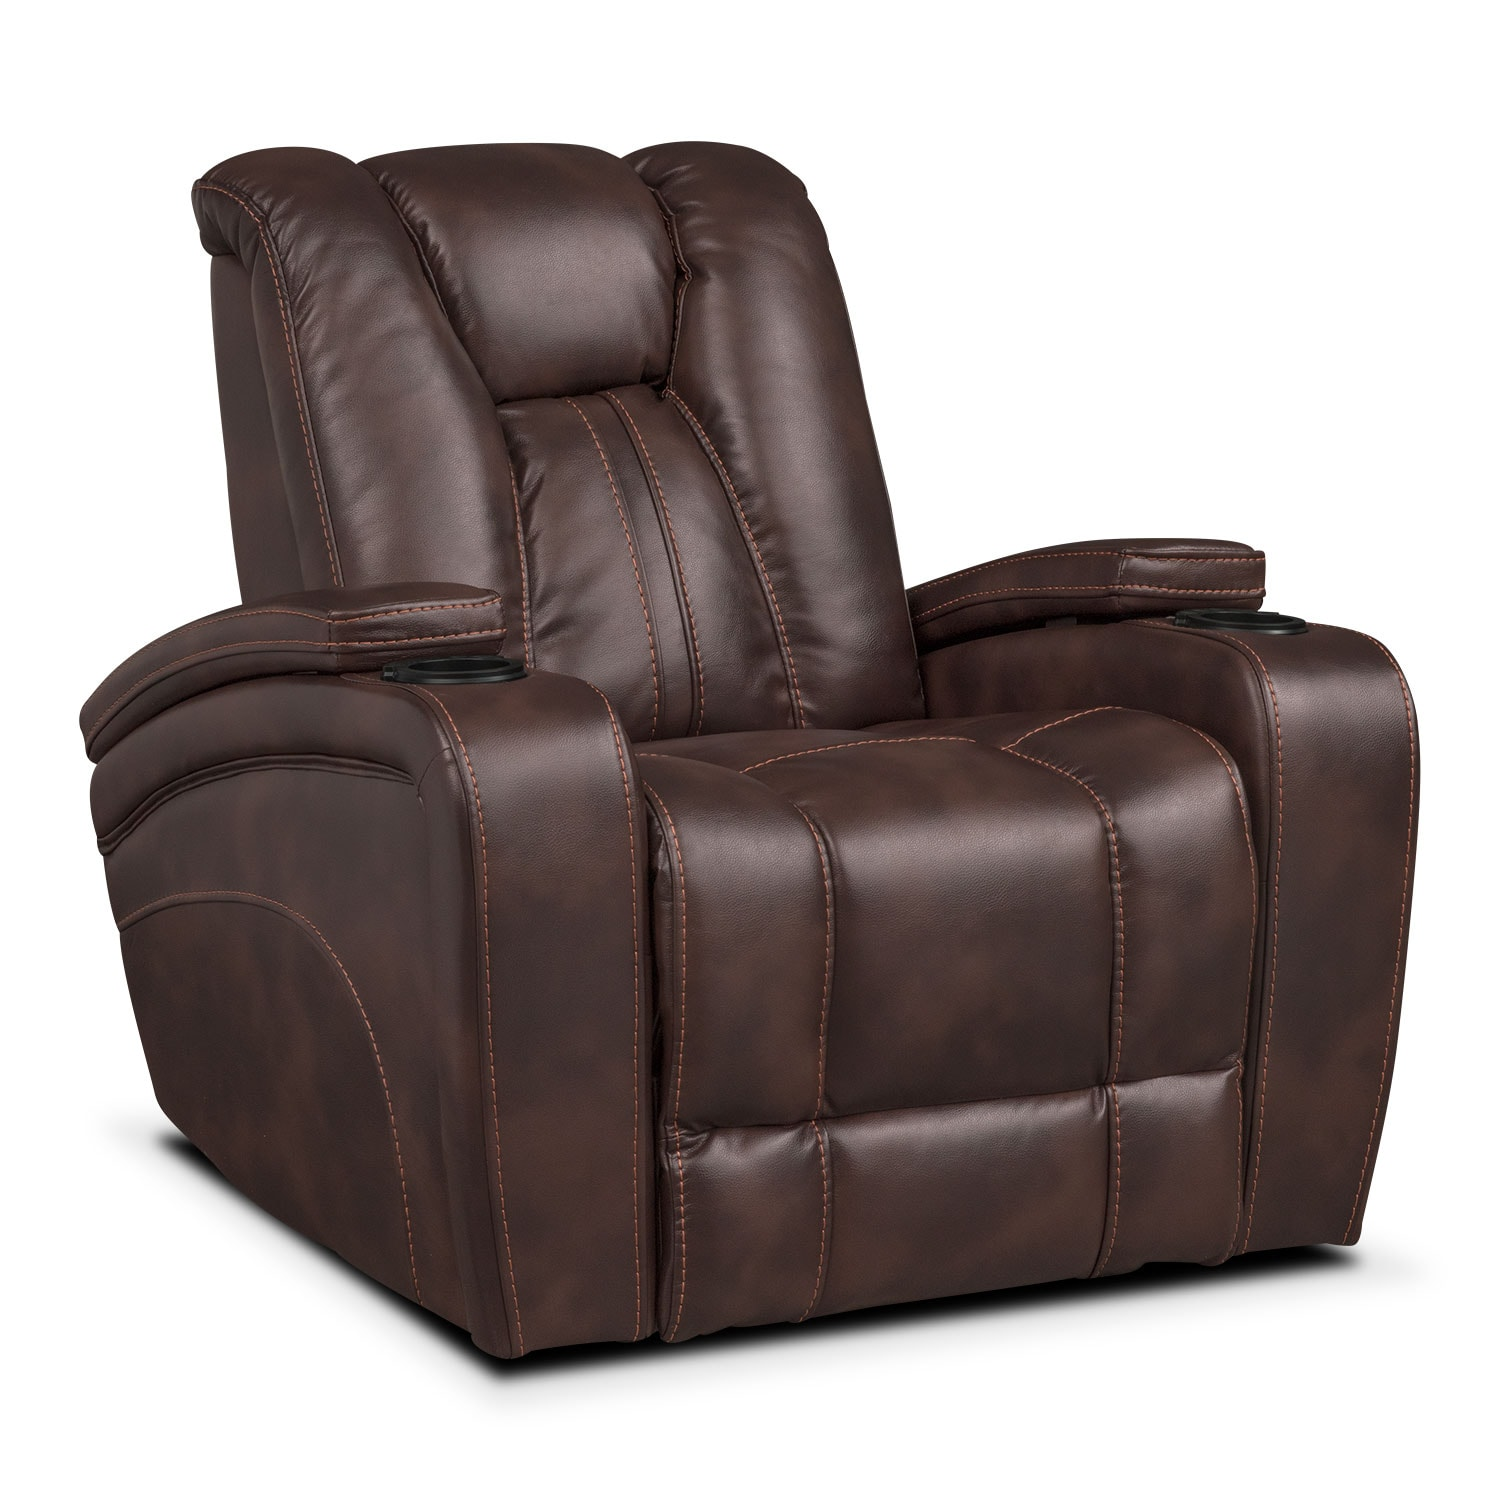 Pulsar power reclining sofa power reclining loveseat and power recliner set brown american Power loveseat recliner